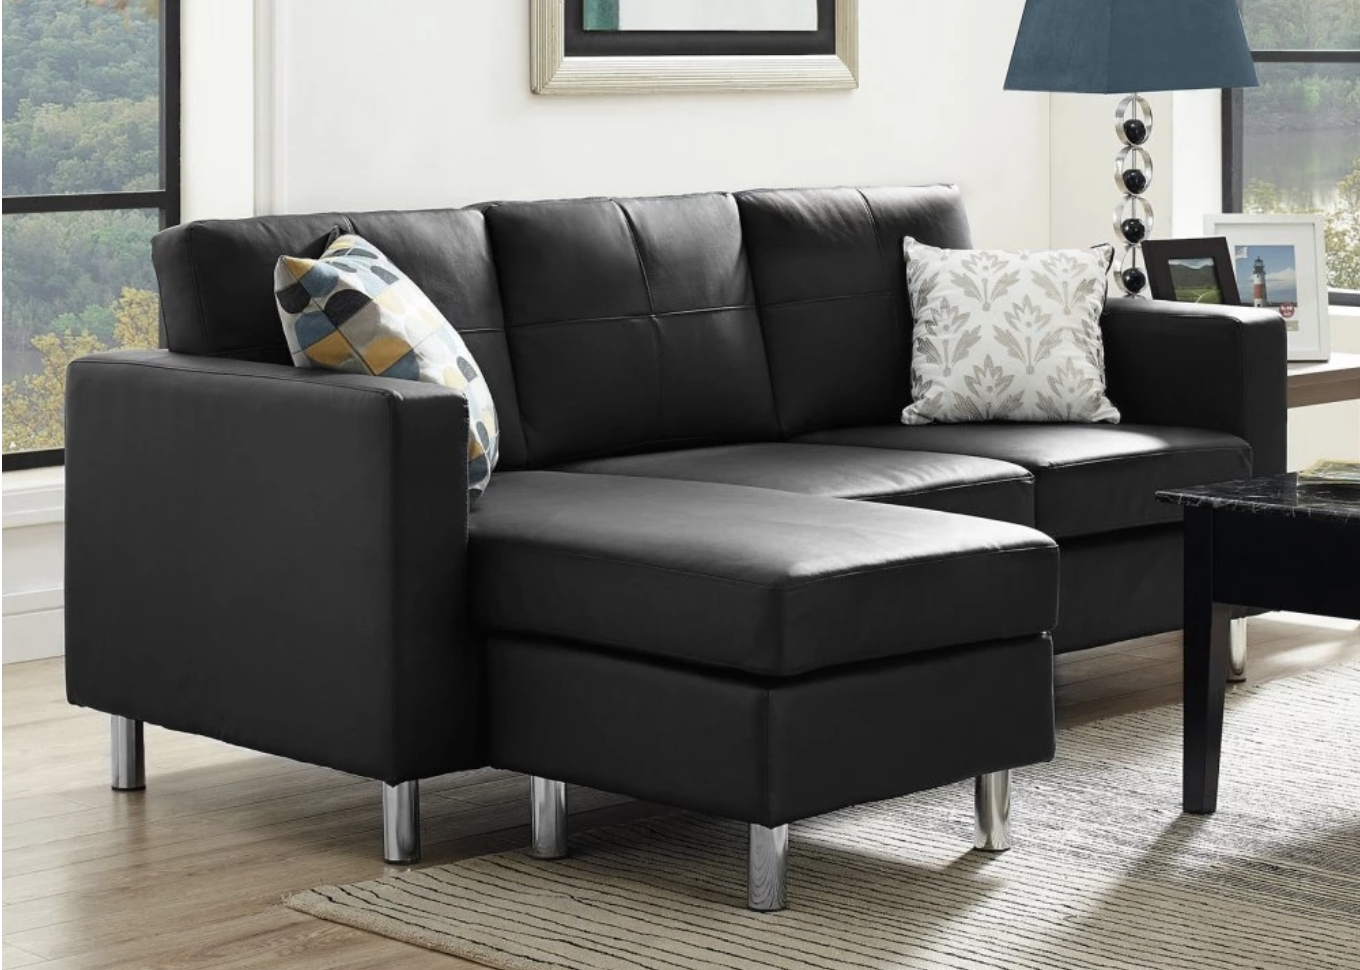 75 Modern Sectional Sofas For Small Spaces (2018) with Sectional Sofas For Small Spaces